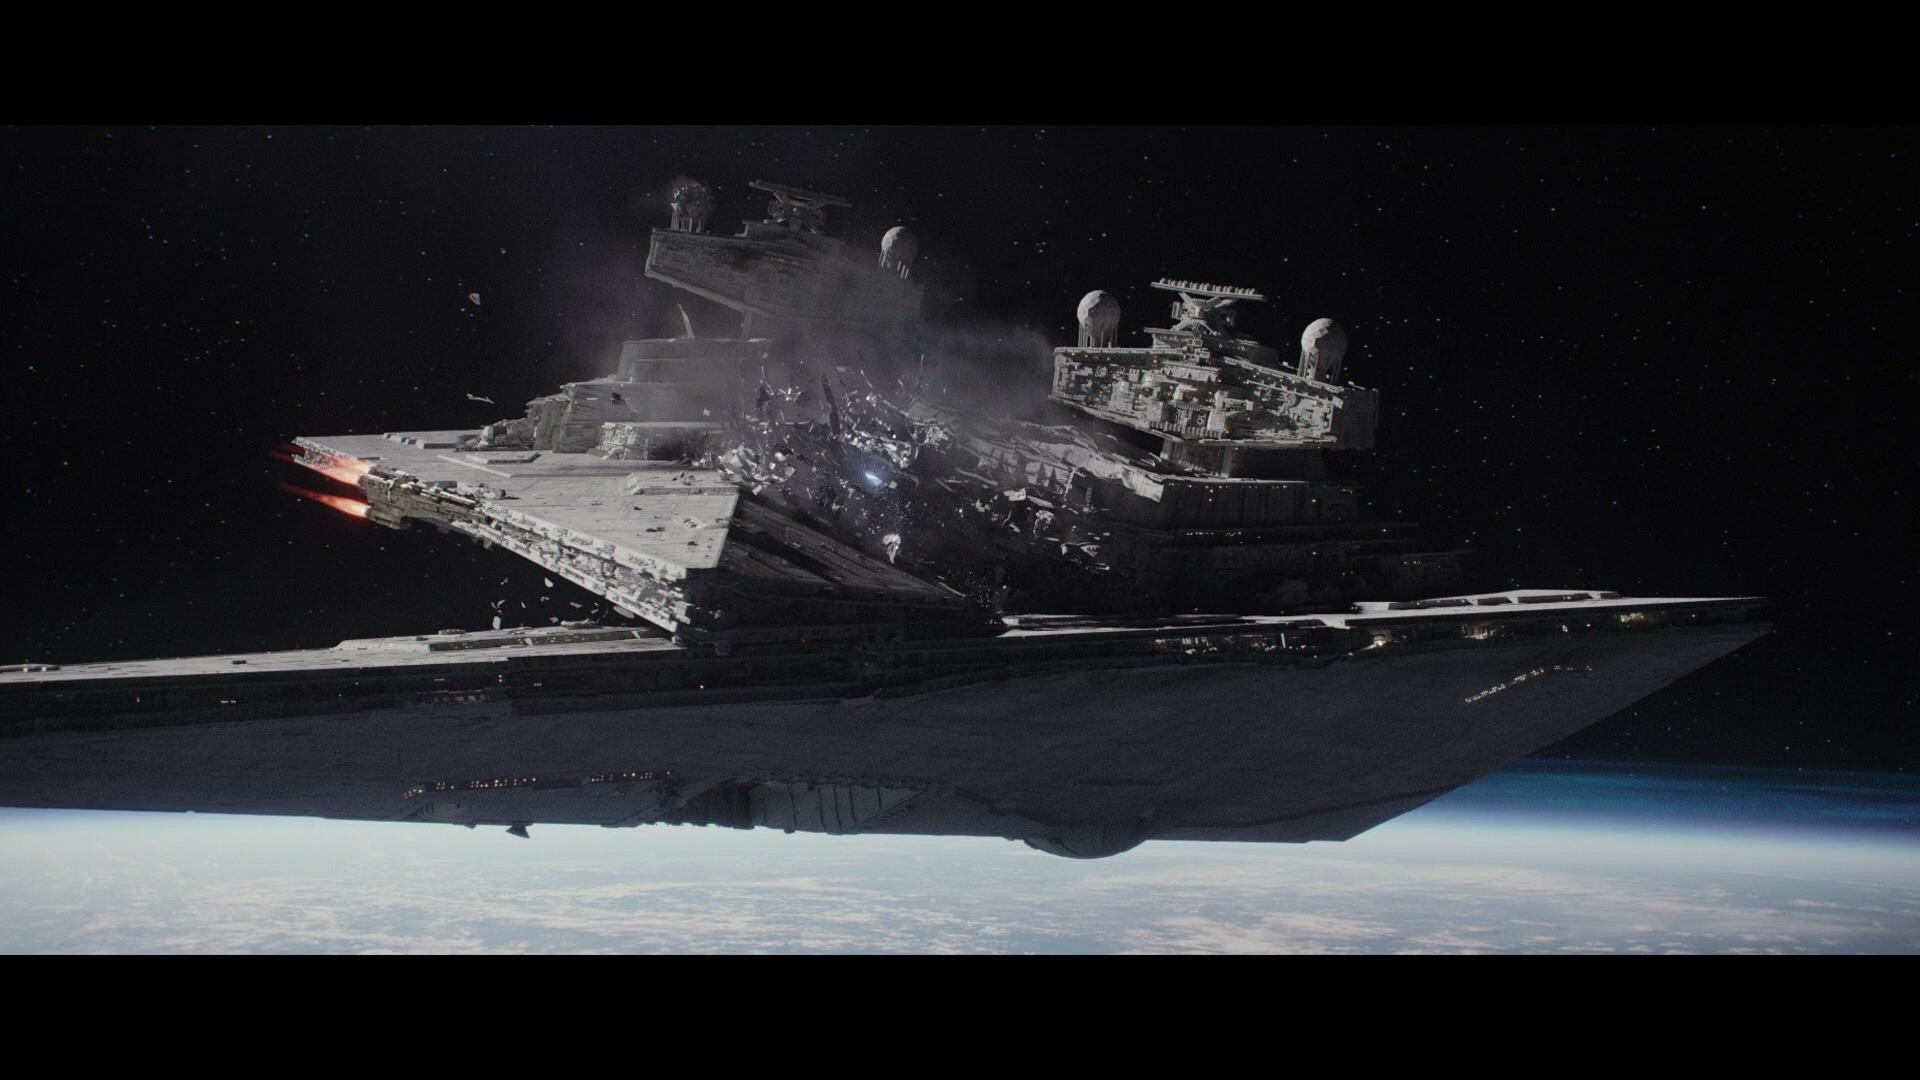 Wallpaper of a Star Destroyer destroying another Star Destroyer (Rogue One)